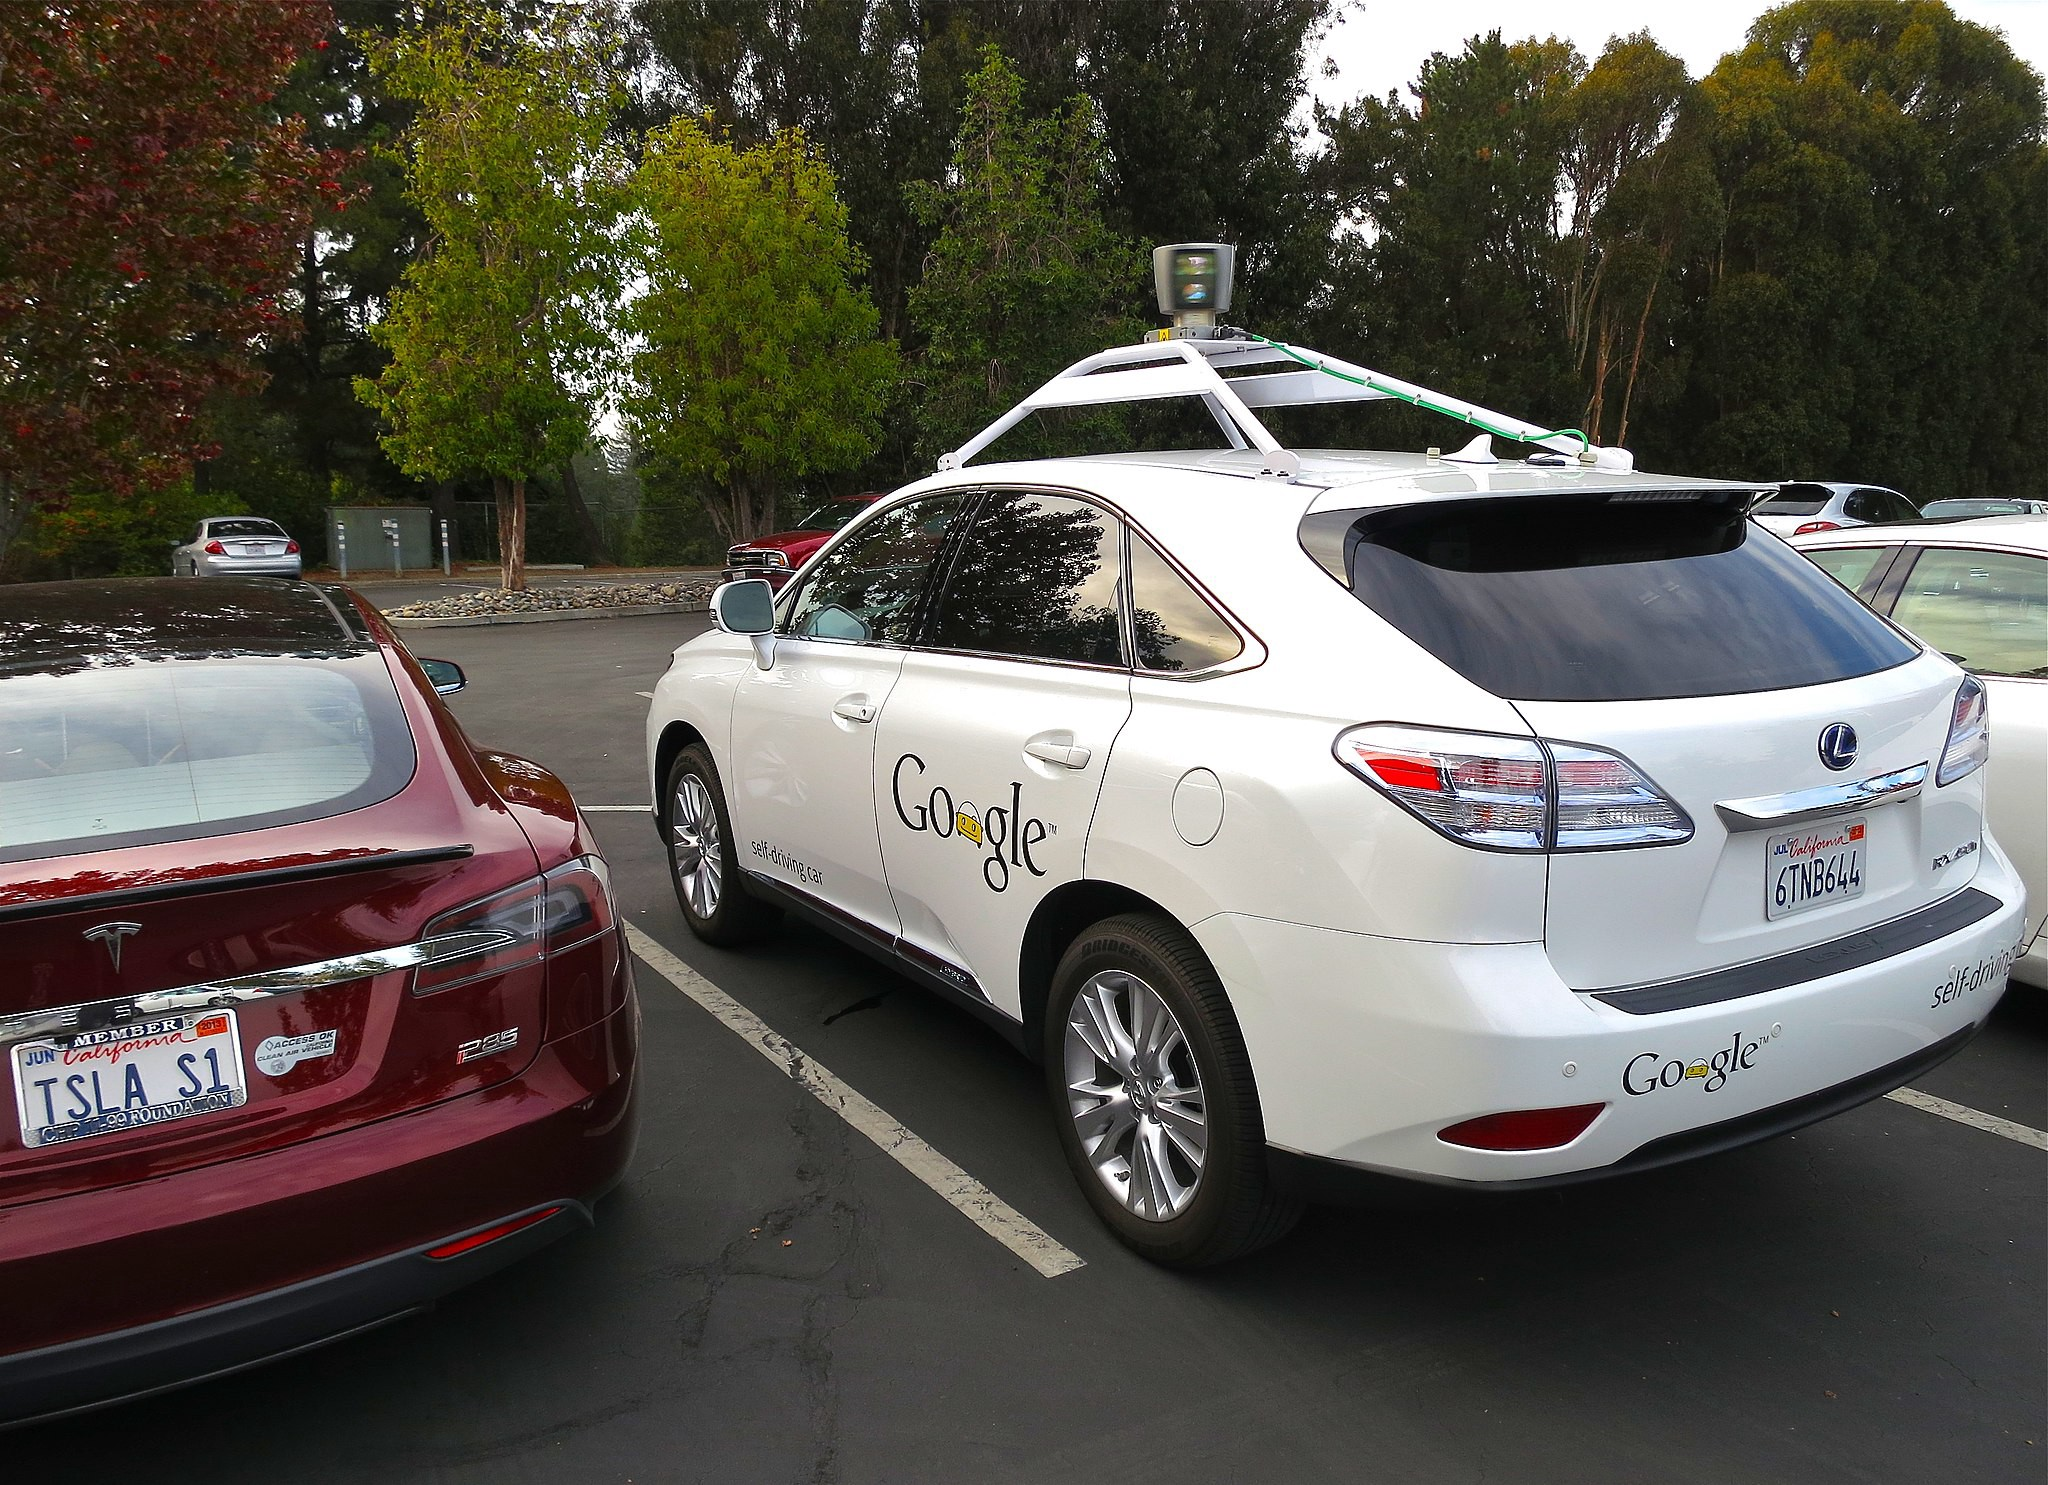 /why-bigtech-apple-google-is-scaling-back-on-self-driving-cars-8448ec91e12a feature image